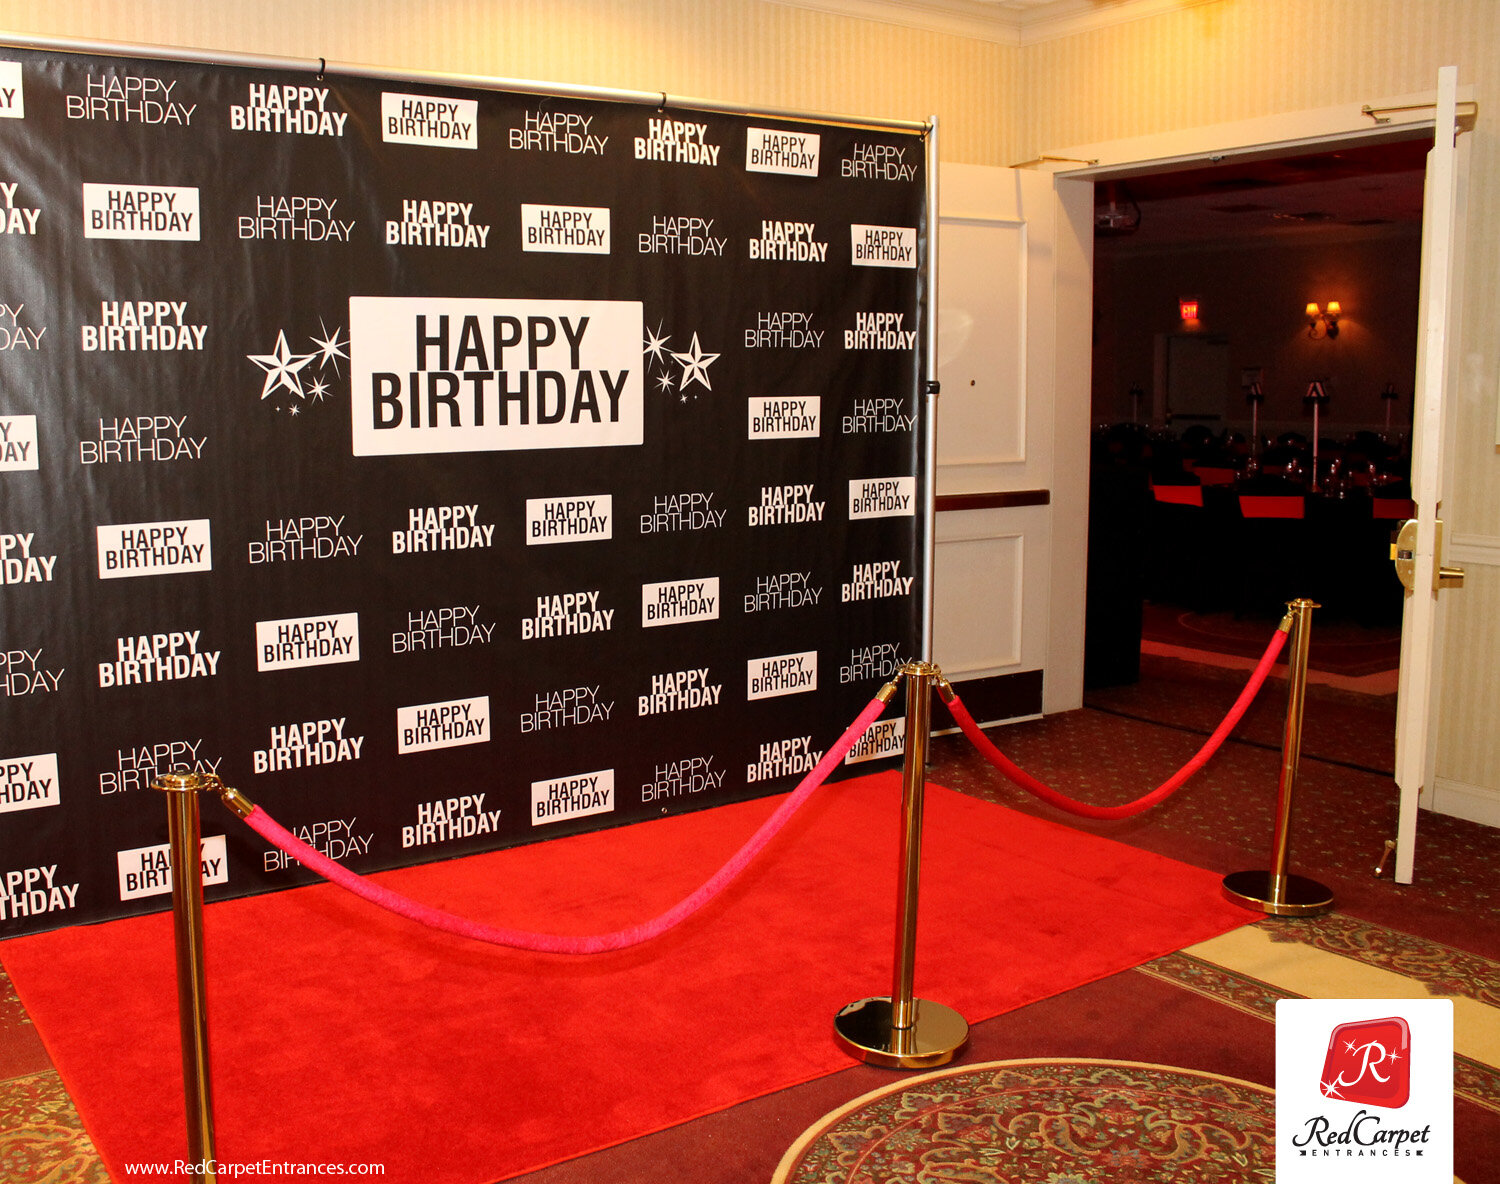 Banner Design Party Event Made in USA #4020 Black and Royal Step and Repeat Backdrop Photo Booth Stand Red Carpet